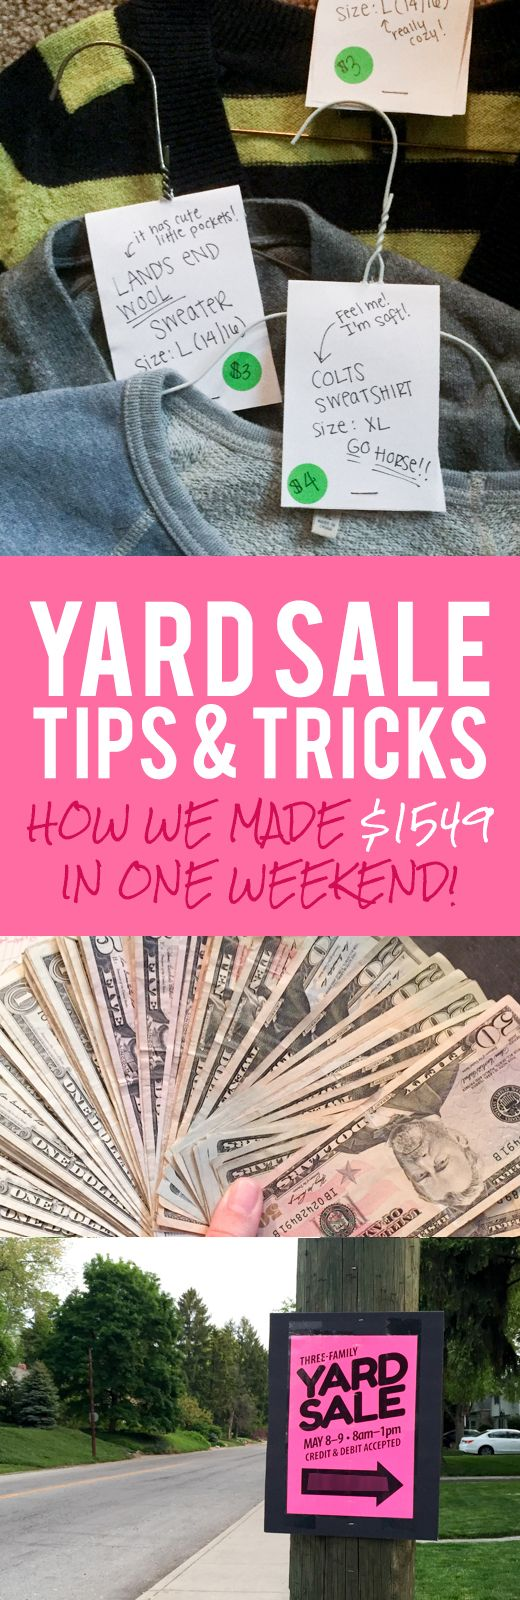 Yard Sale Tips & Tricks. Bear this in mind for car boot sale too